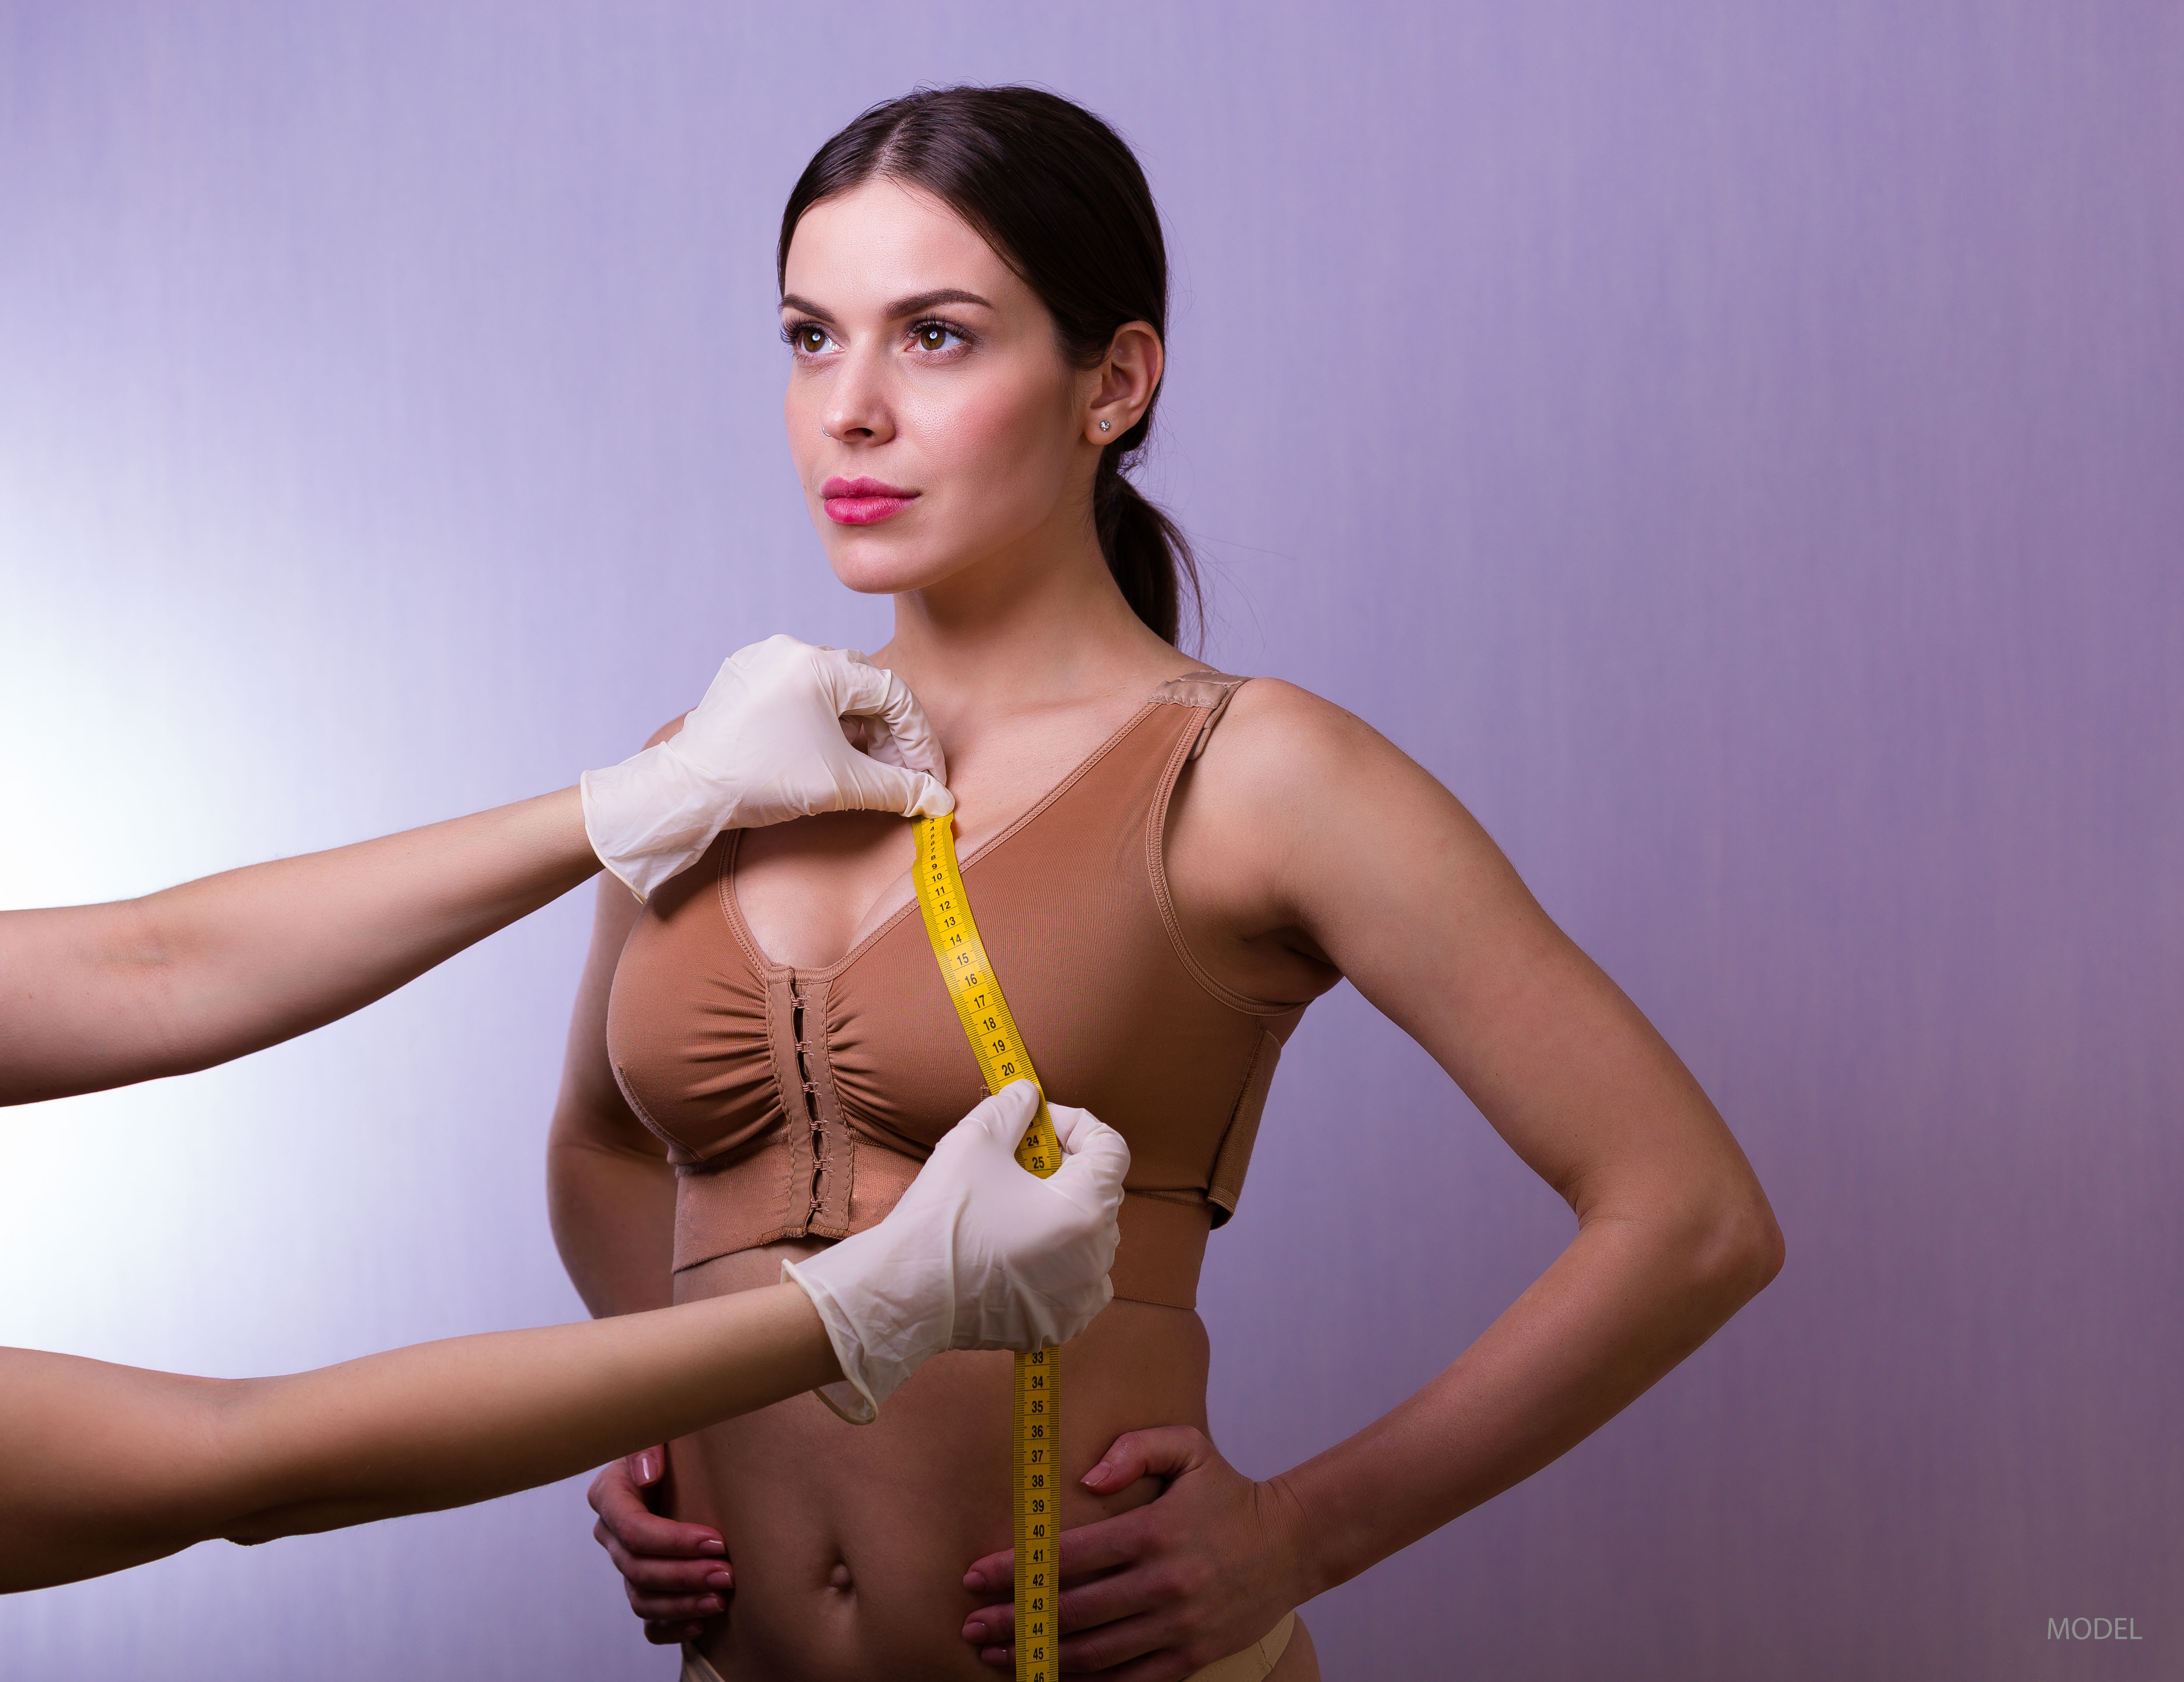 Get the facts about breast augmentation